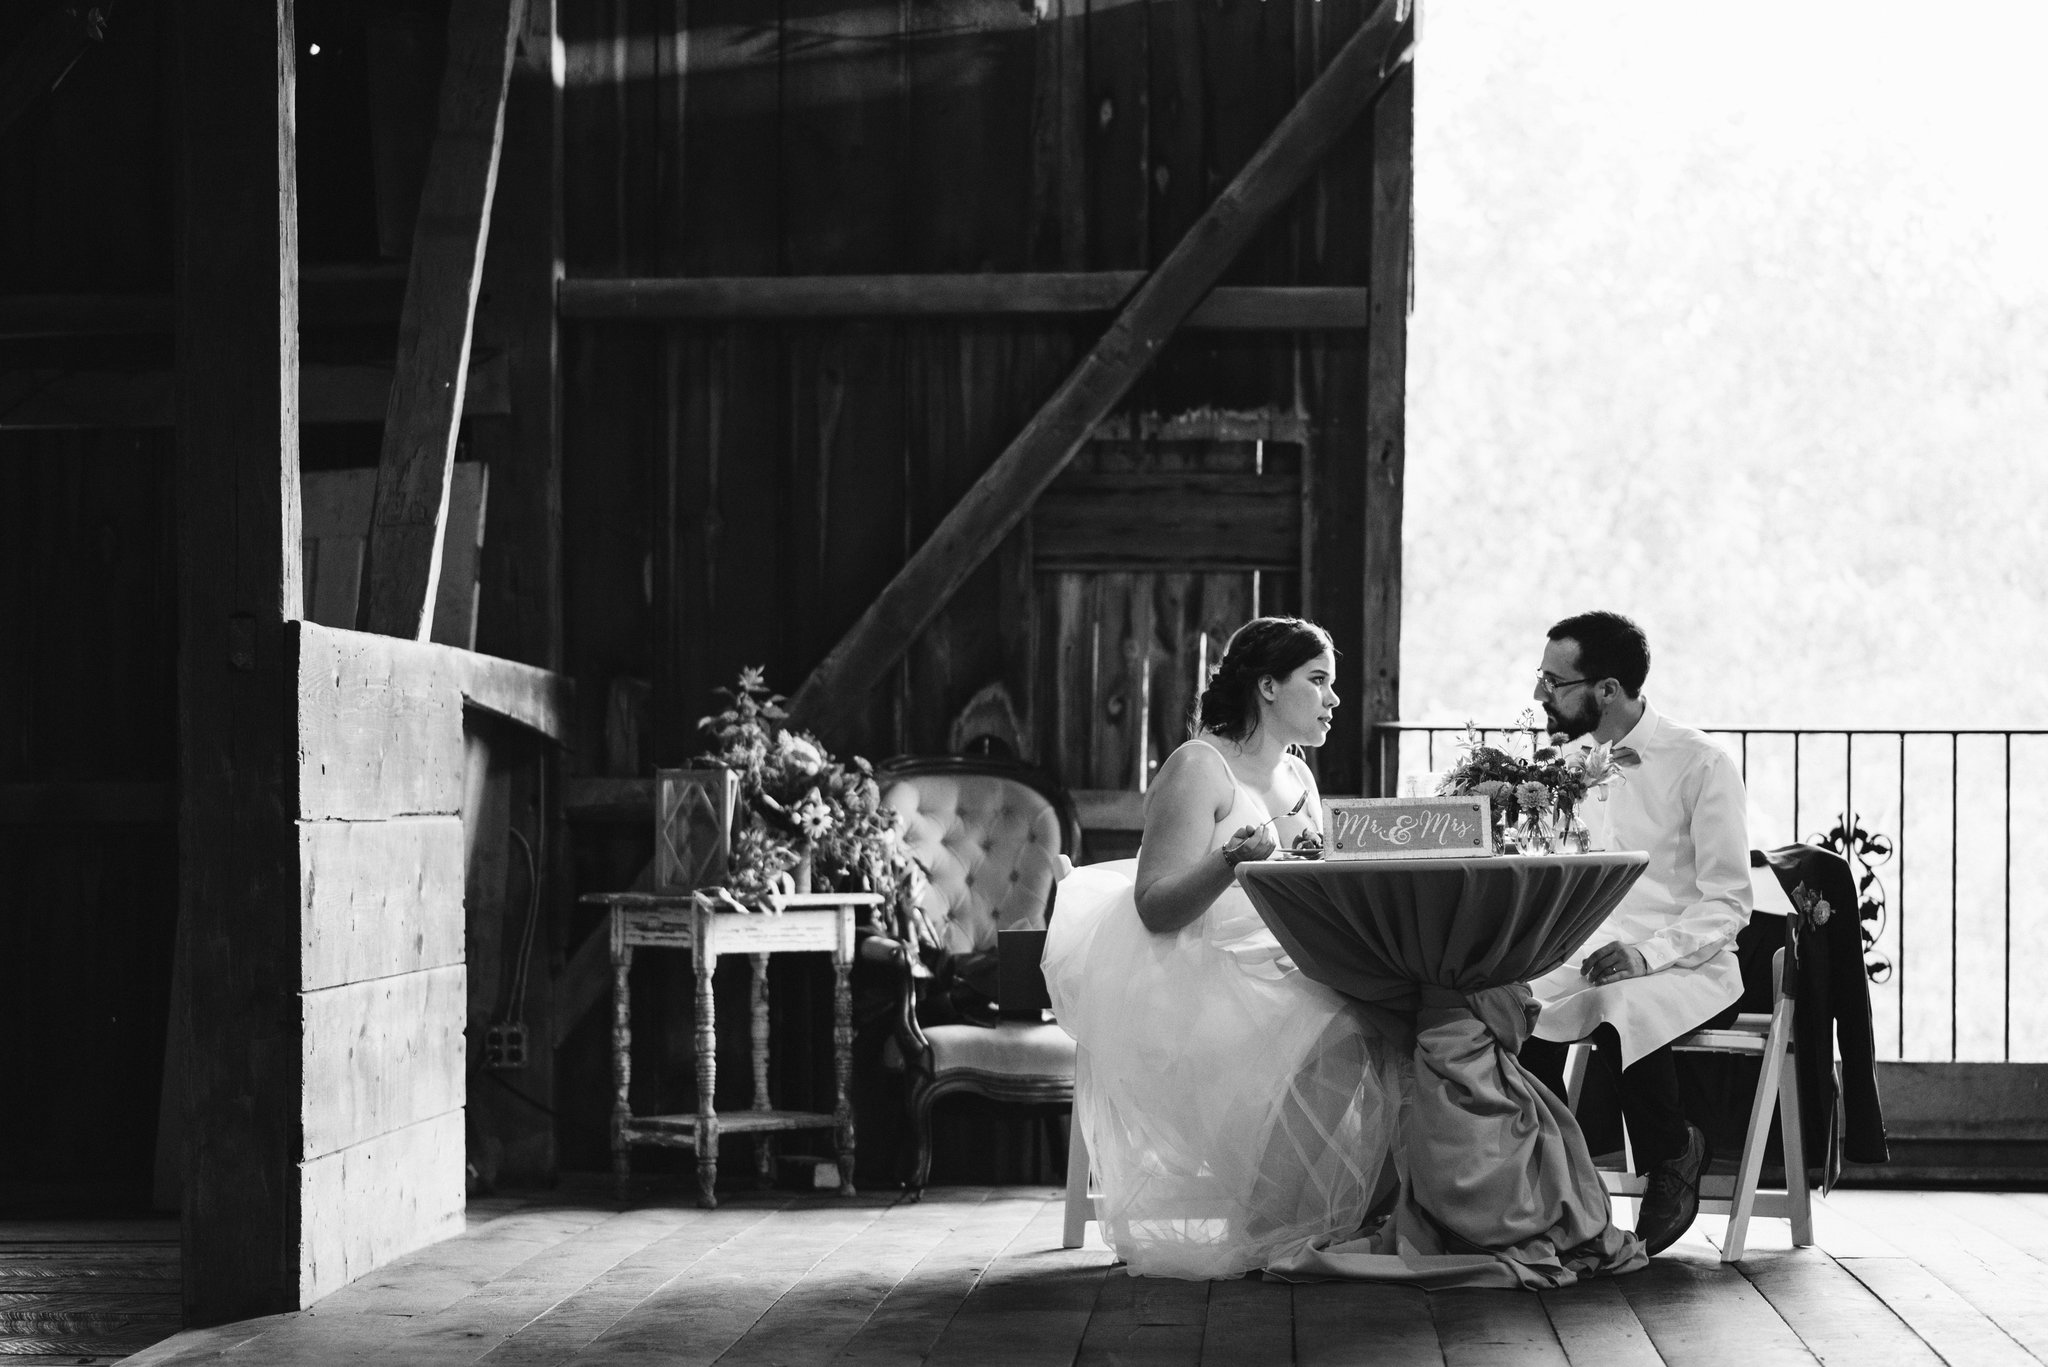 Rocklands Farm, Maryland, Intimate Wedding, Baltimore Wedding Photographer, Sungold Flower Co, Rustic, Romantic, Barn Wedding, Bride and Groom at Head Table, Black and White Photo